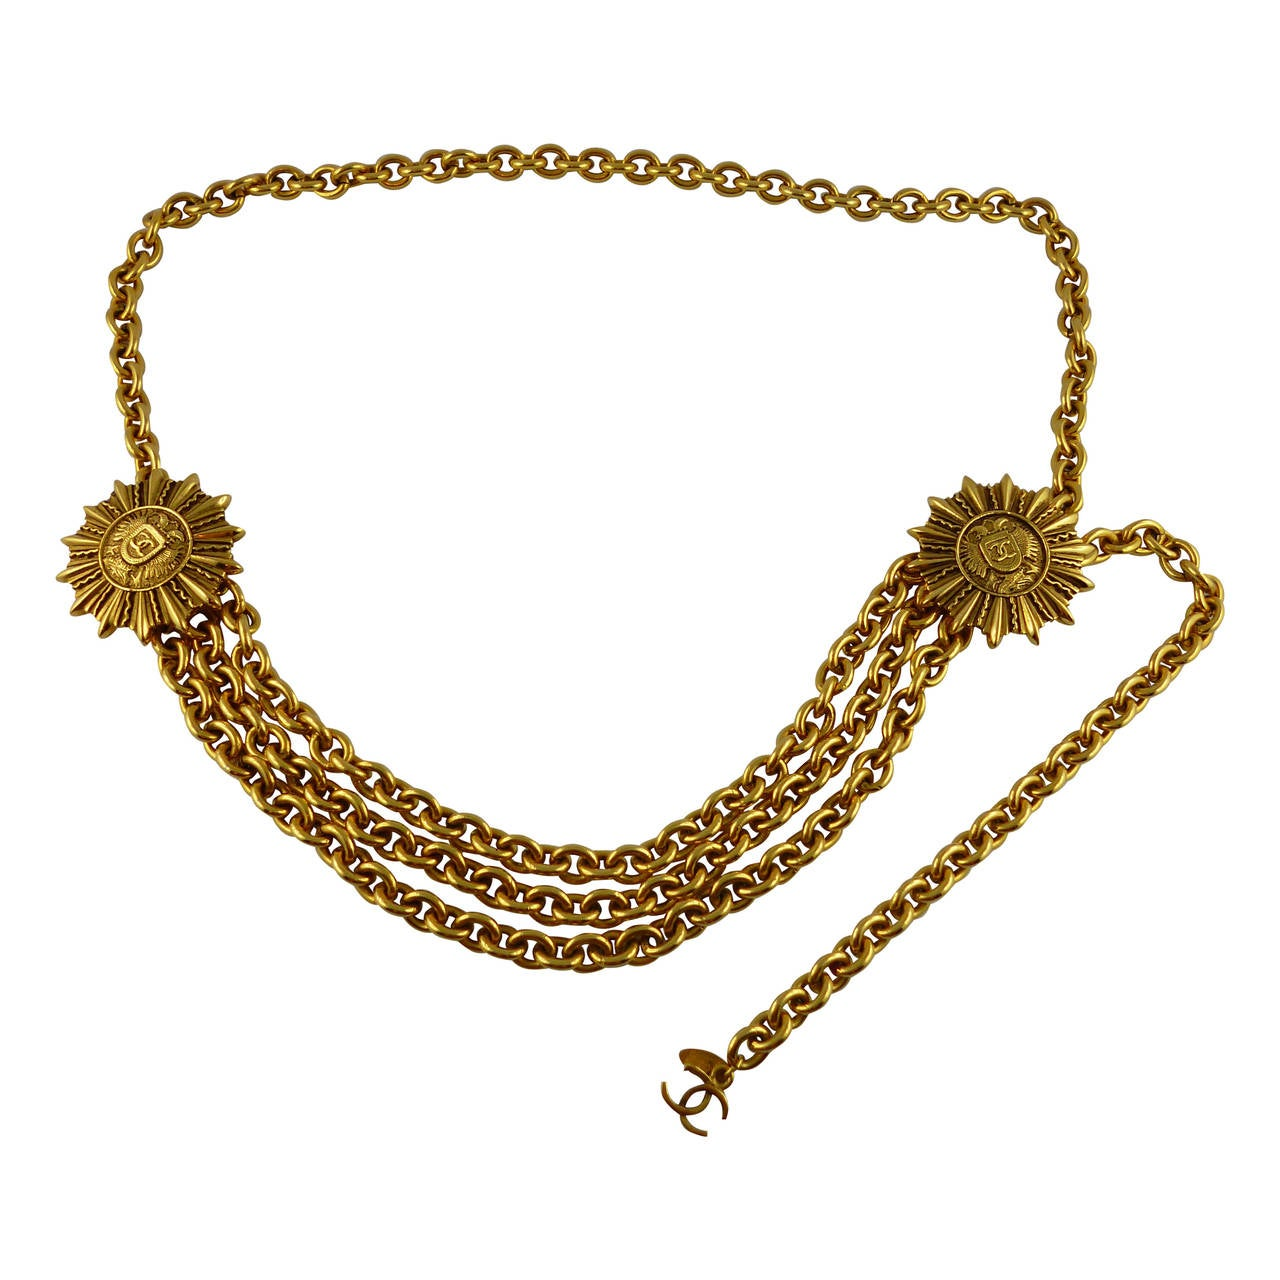 Chanel Vintage Double-Headed Eagle Insigna Belt Necklace For Sale